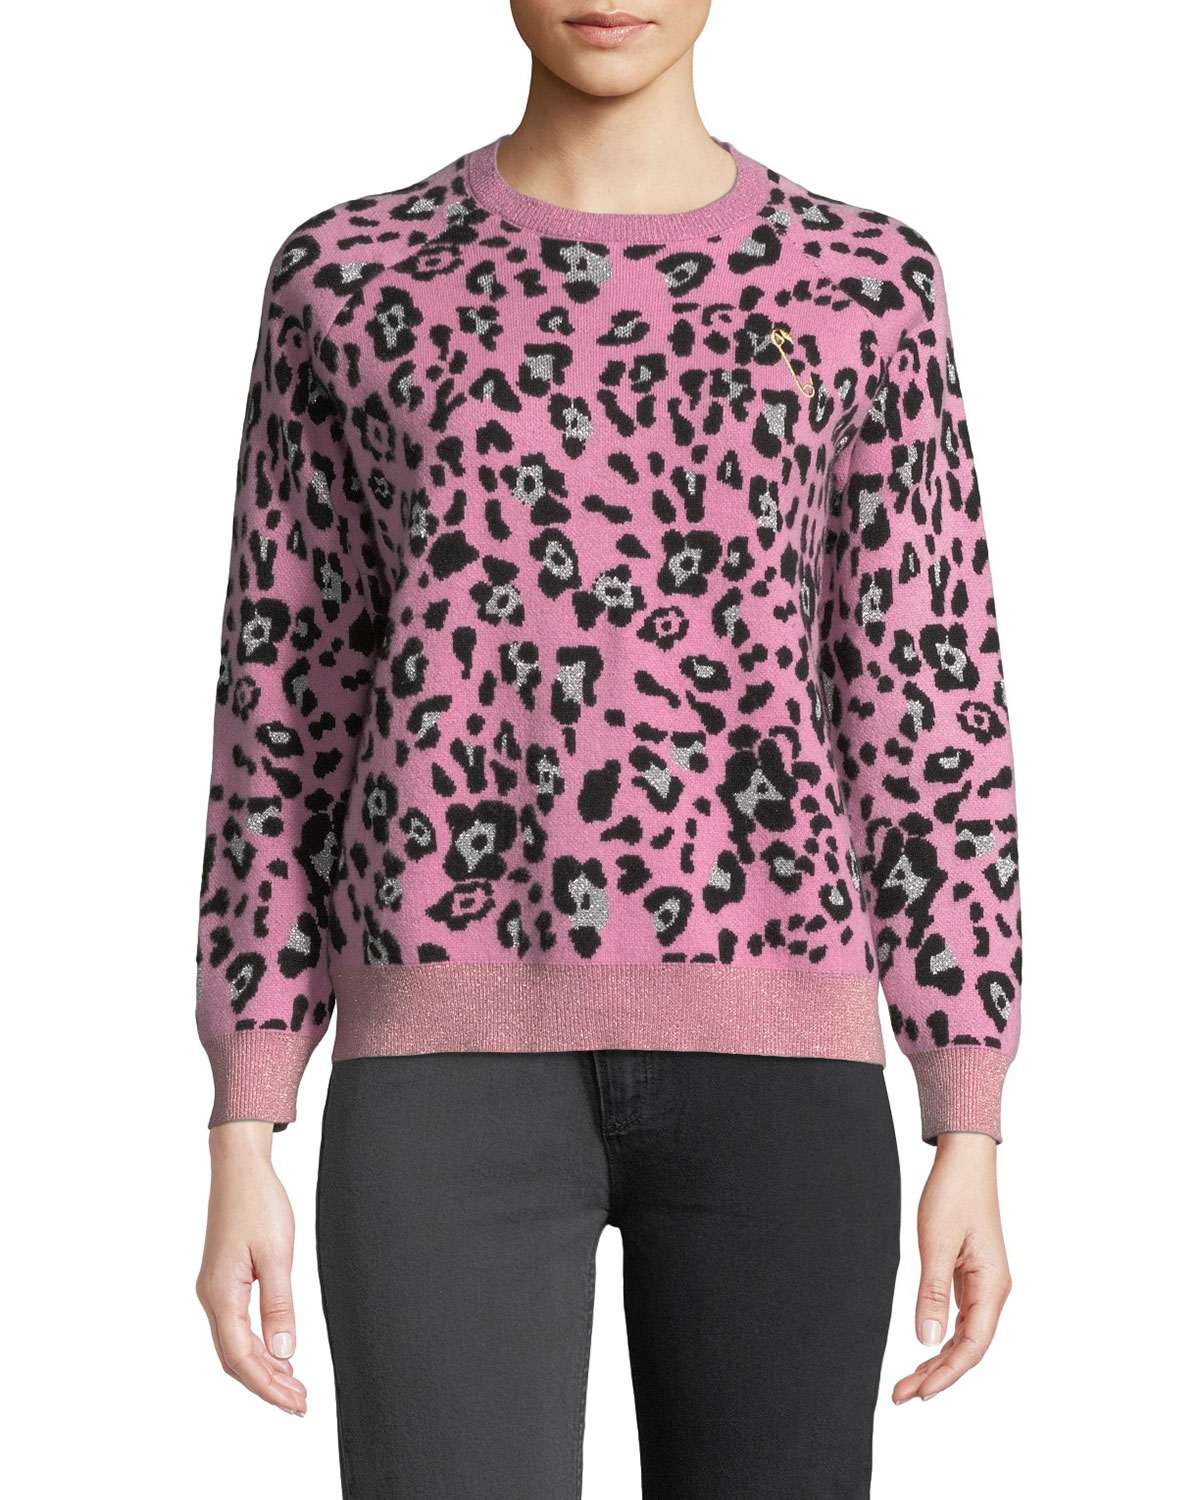 REPLICA LOS ANGELES Metallic Leopard-Print Wool Crewneck Sweater in Peony